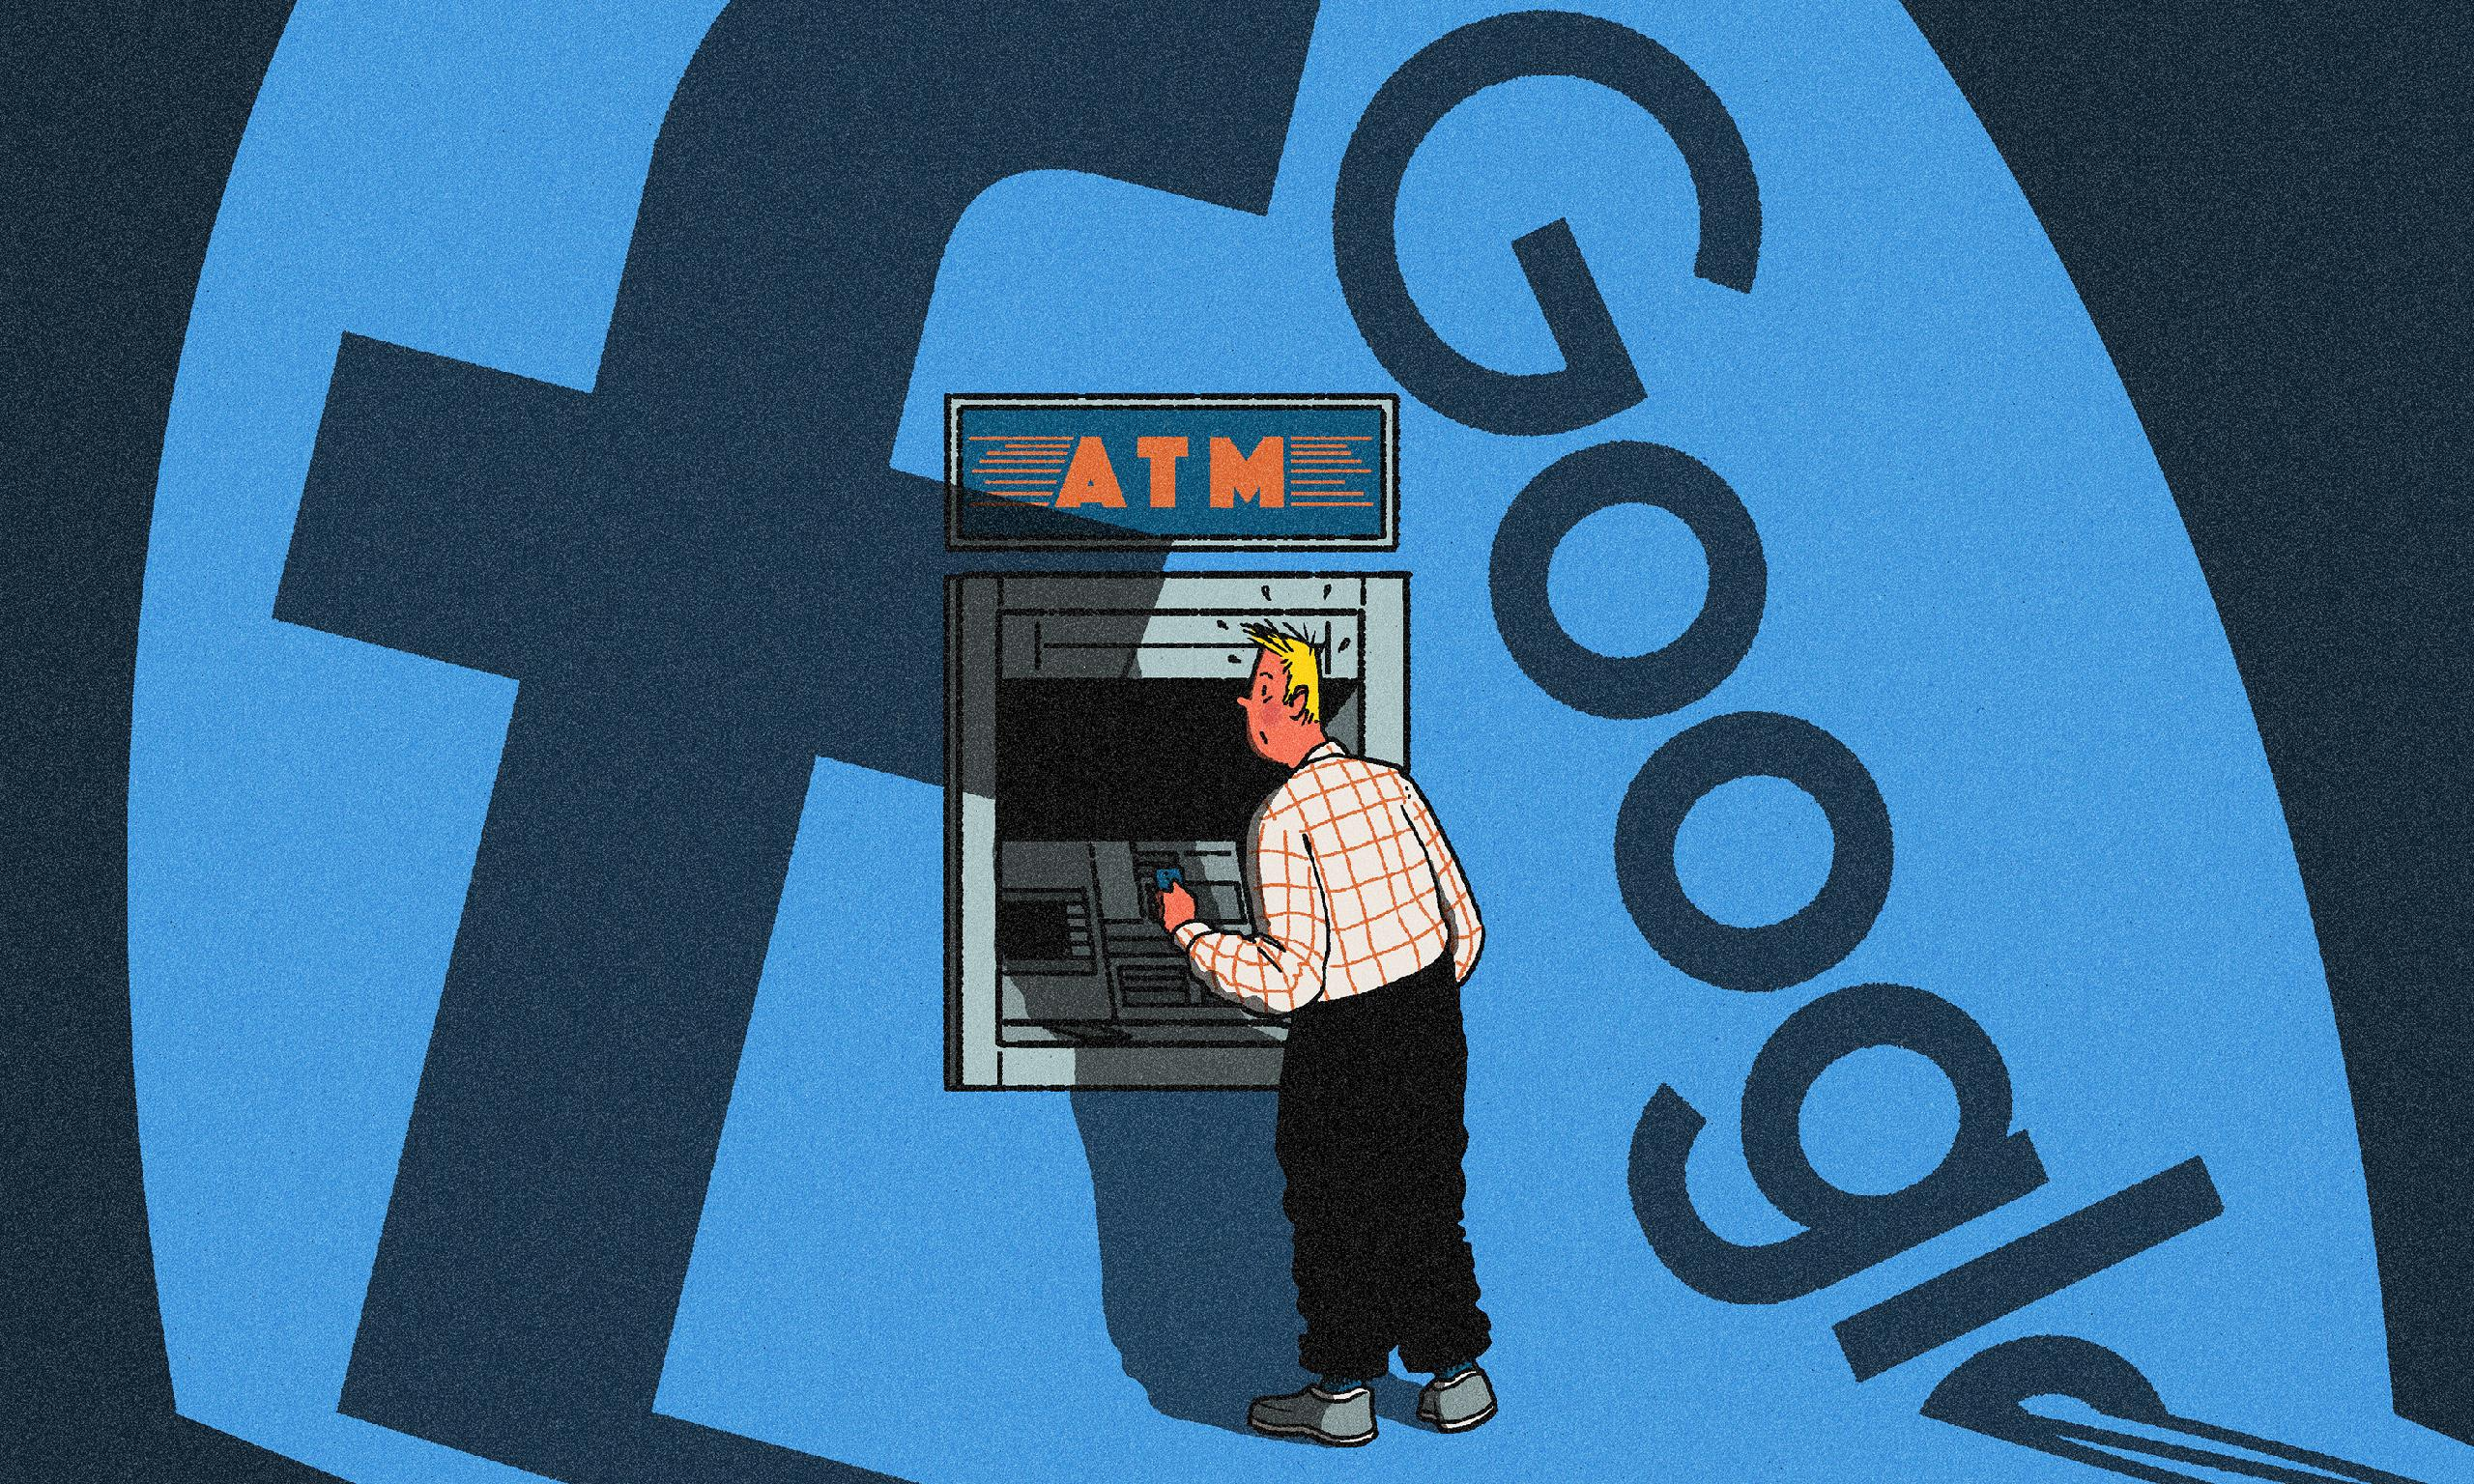 If Facebook or Google create their own currency, they can control our lives